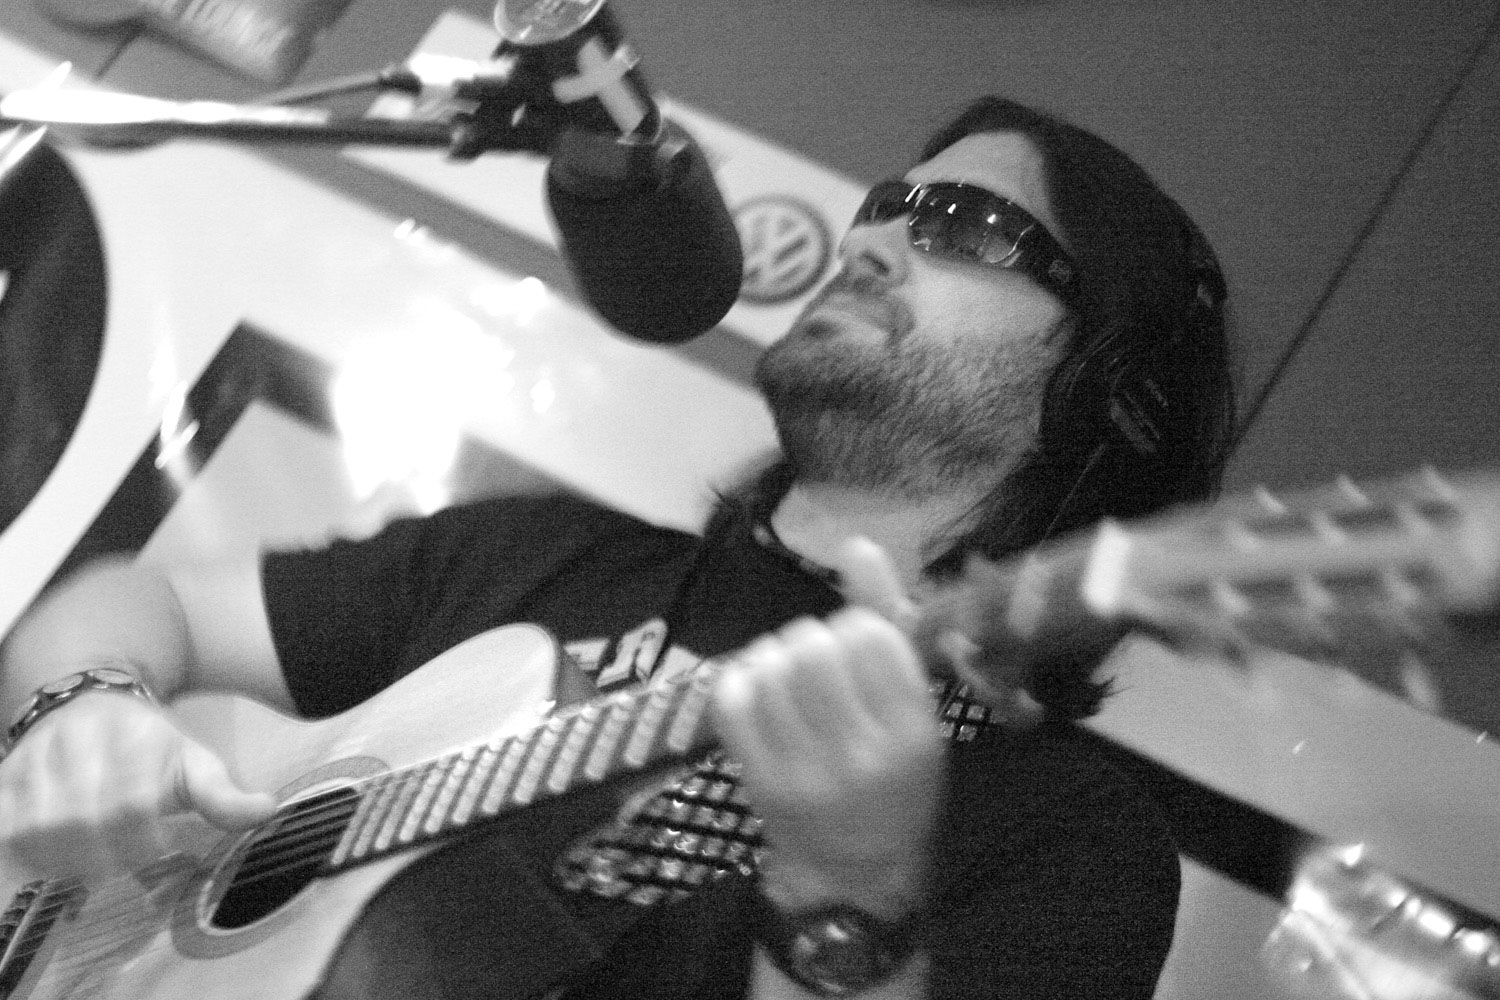 Bob Schneider plays in the studio